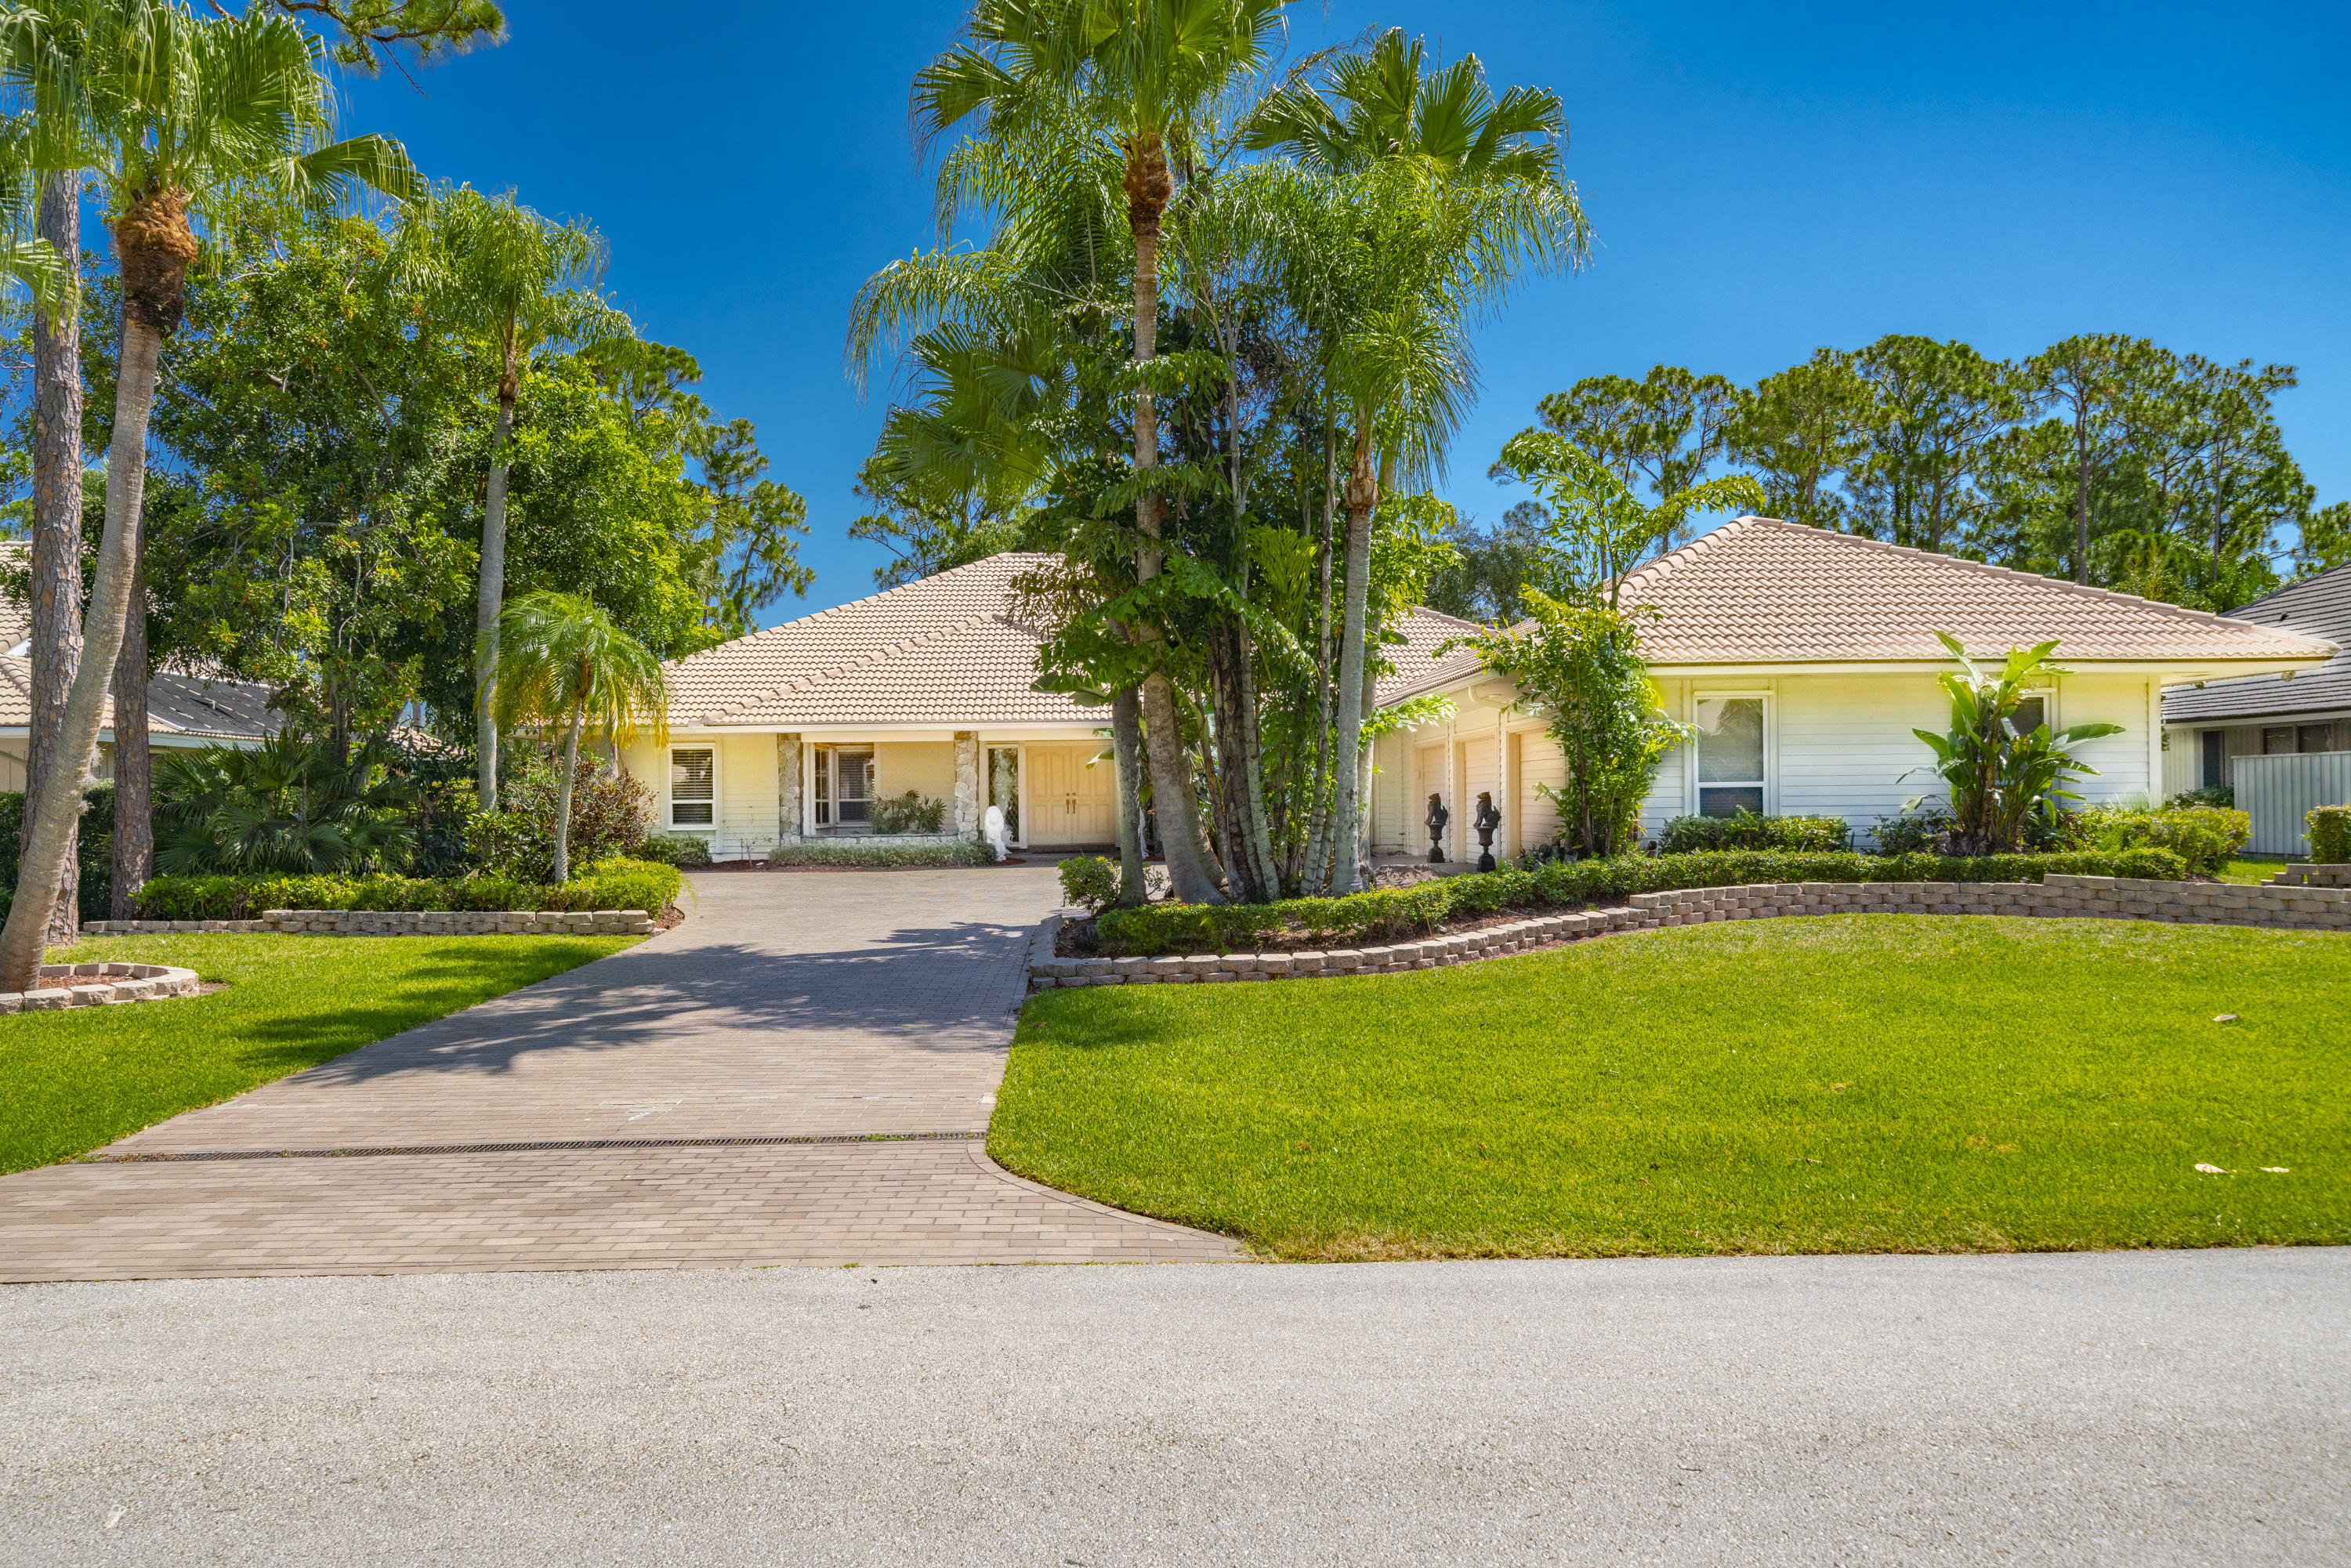 Photo of 20 Rabbits Run, Palm Beach Gardens, FL 33418